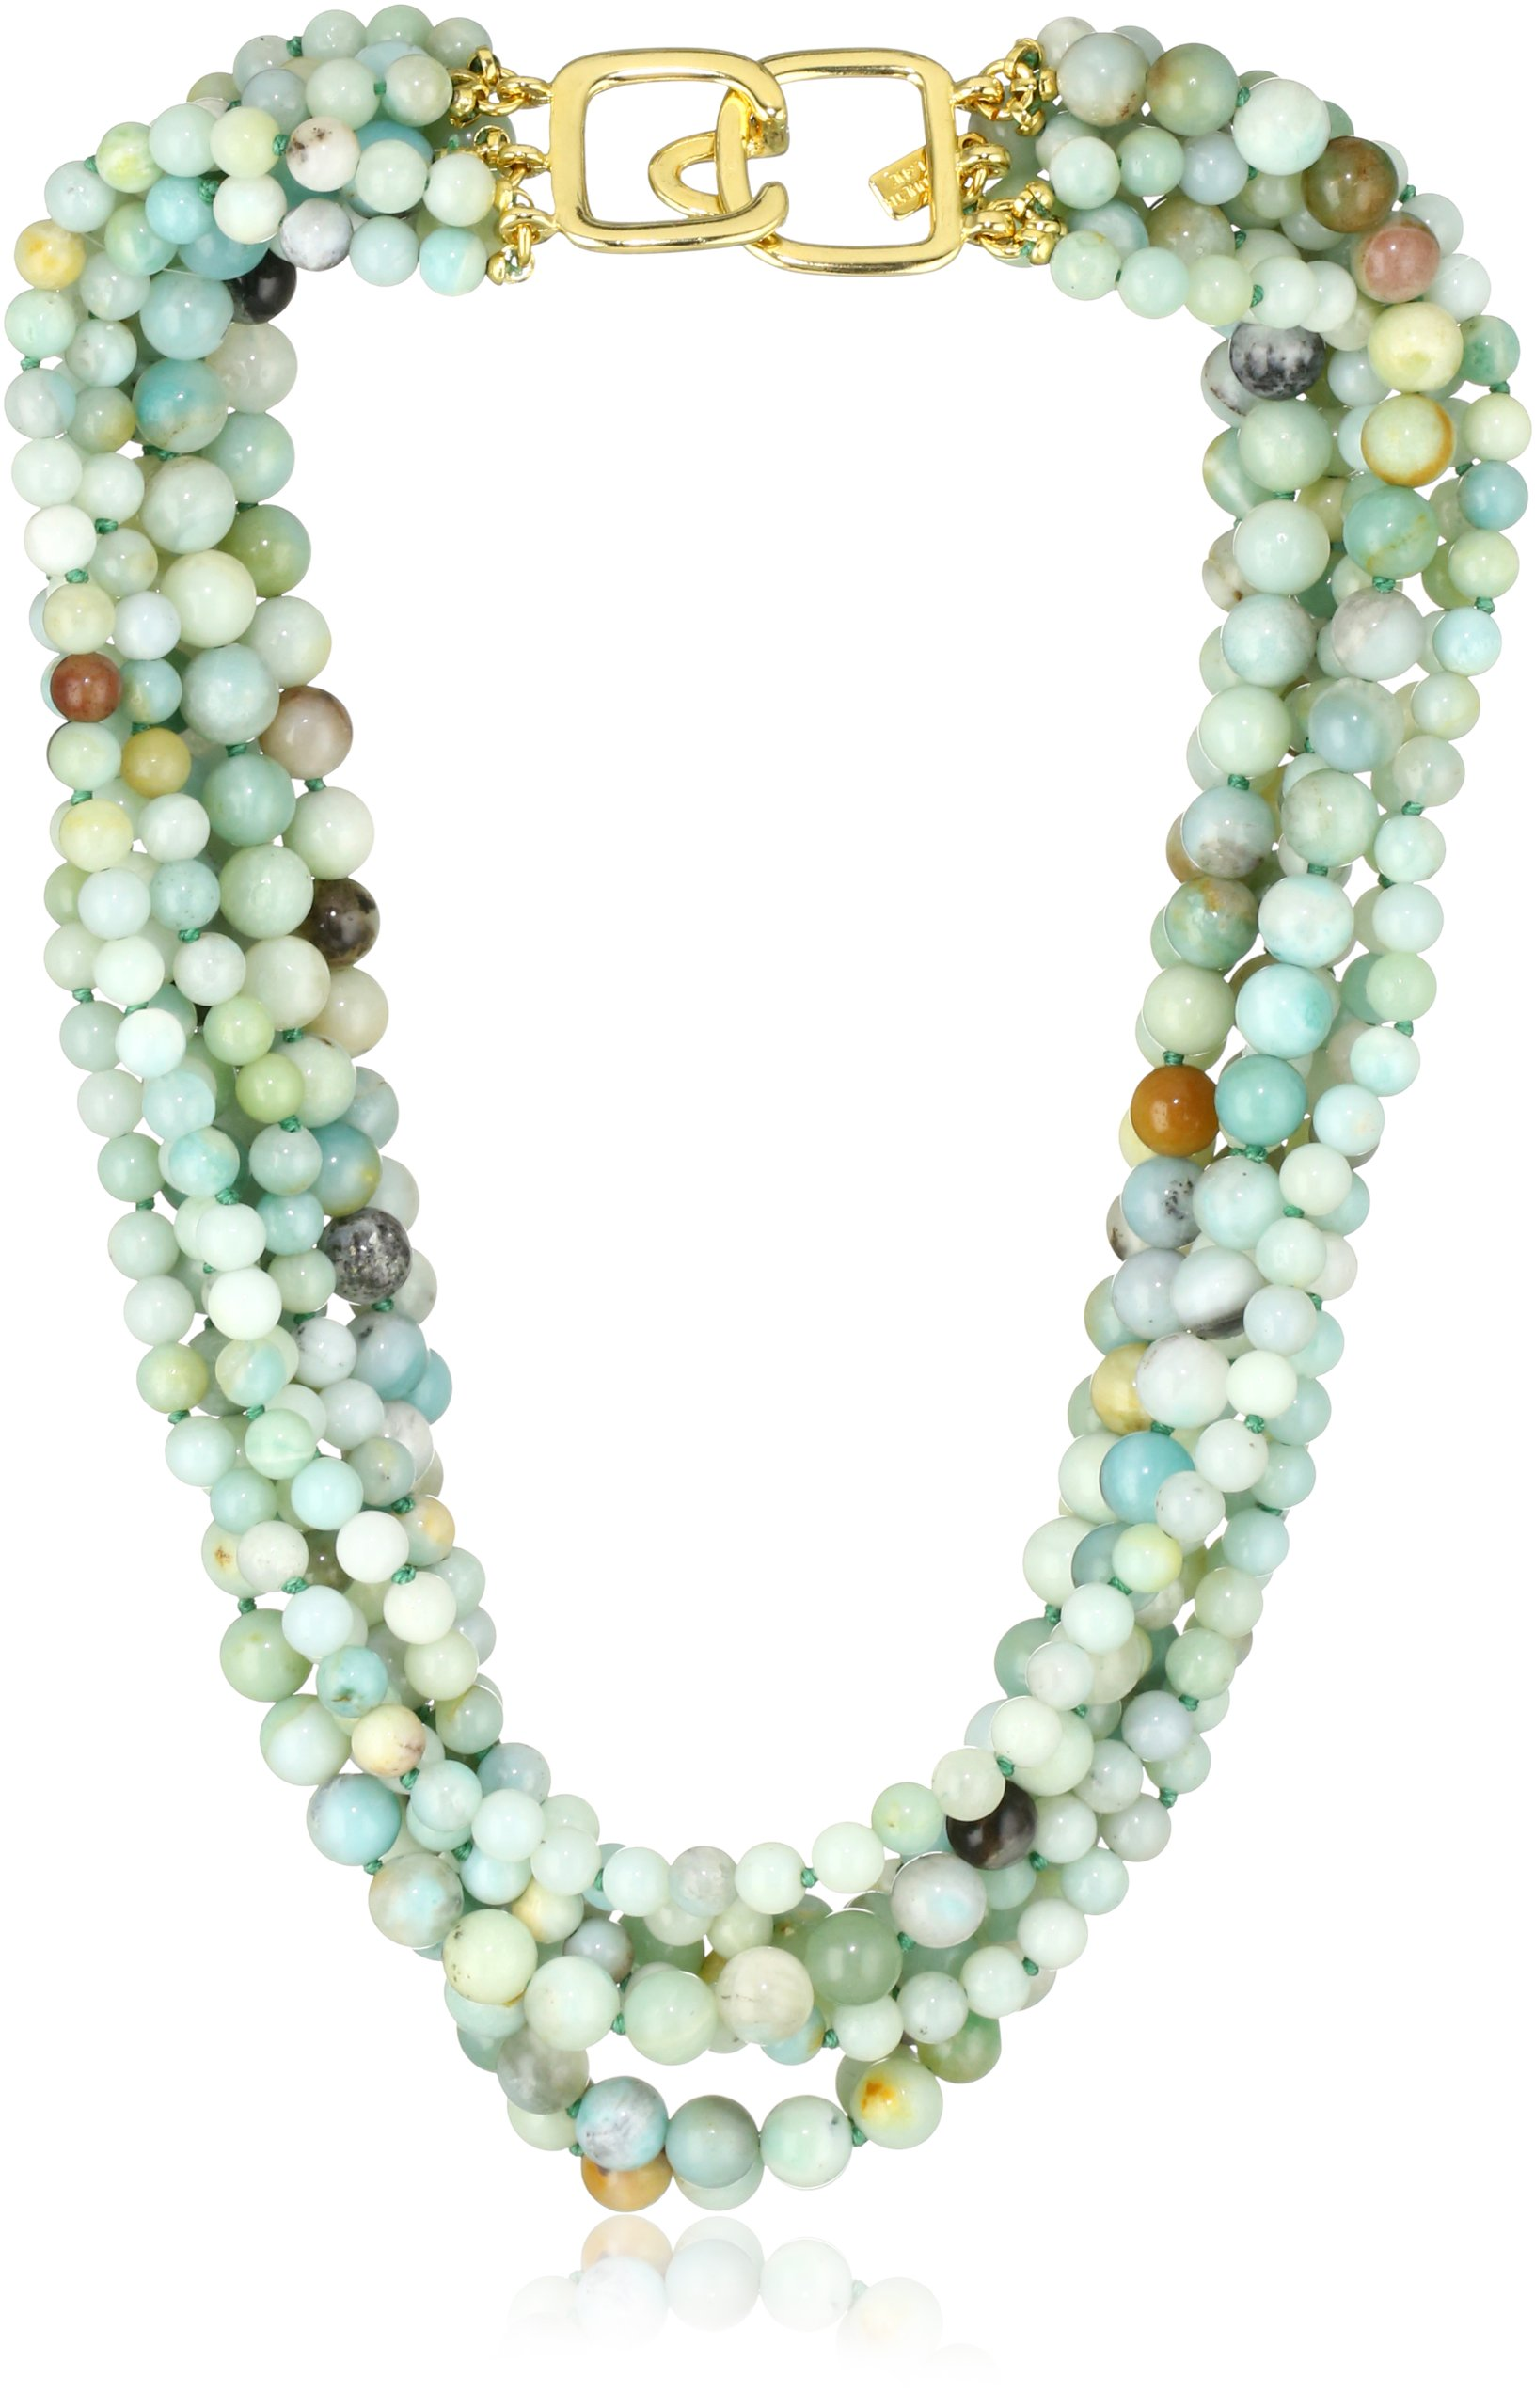 Kenneth Jay Lane 8 Row Jade Bead Necklace by Kenneth Jay Lane